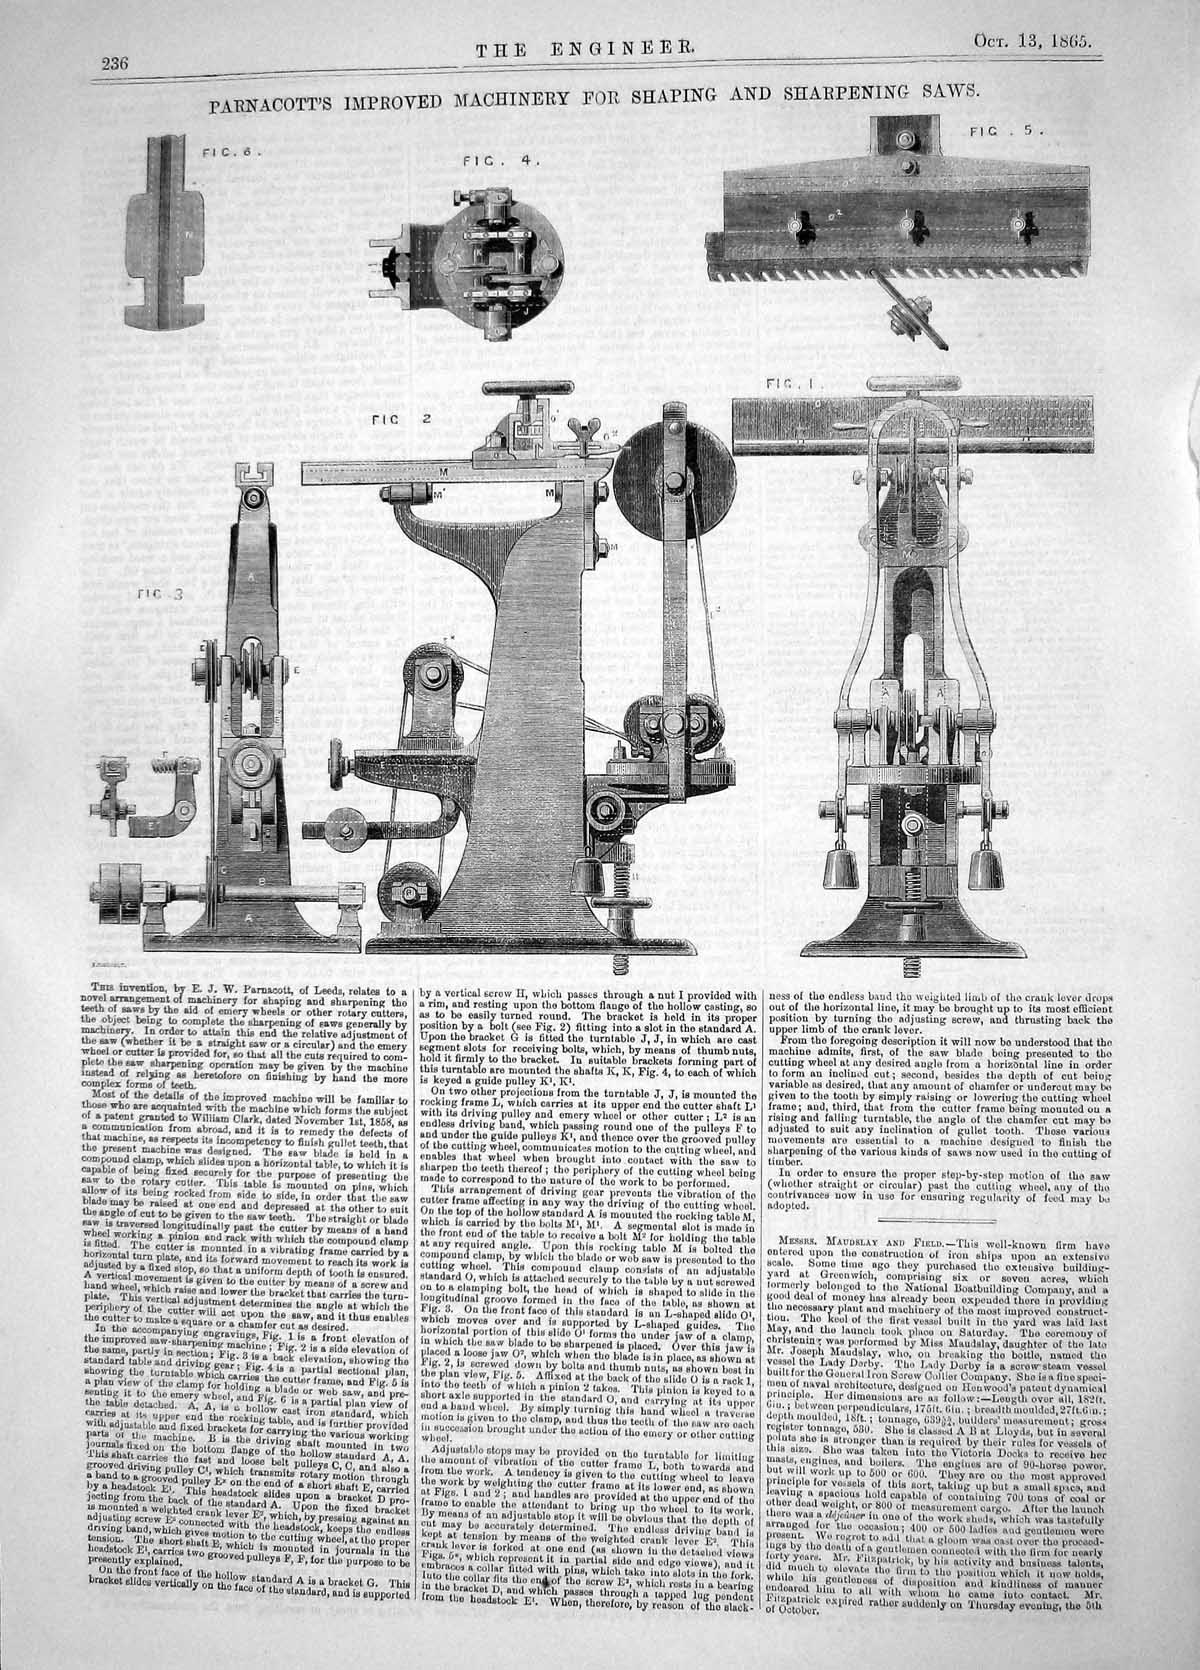 Old-Print-Parnacott-Leeds-Improved-Machinery-Shaping-Sharpening-Saws-1865-19th